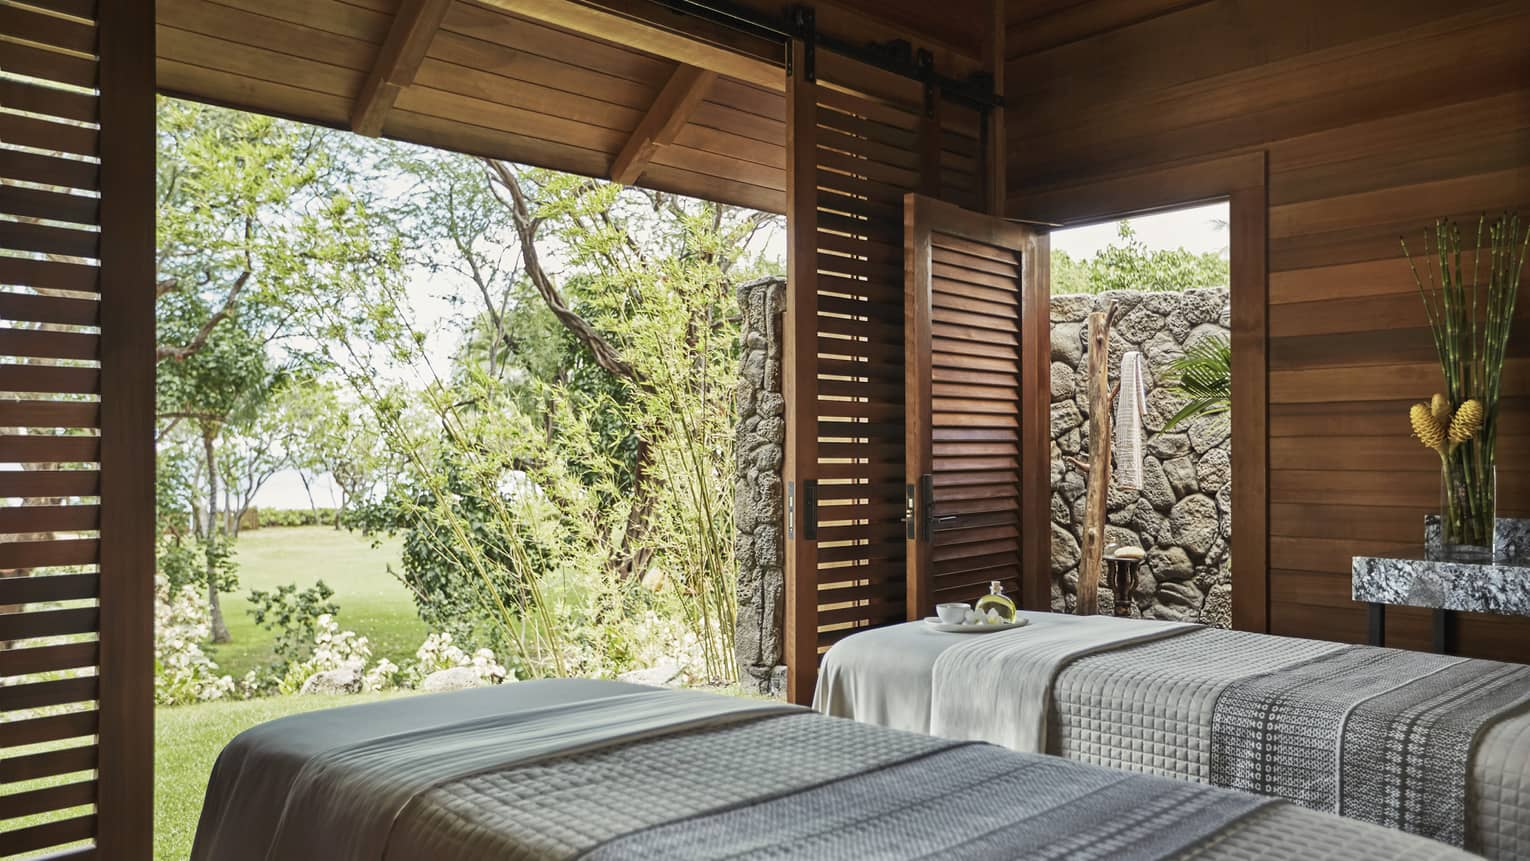 Spa Hale Couples Room side-by-side in pavillions with open sliding wood shutters